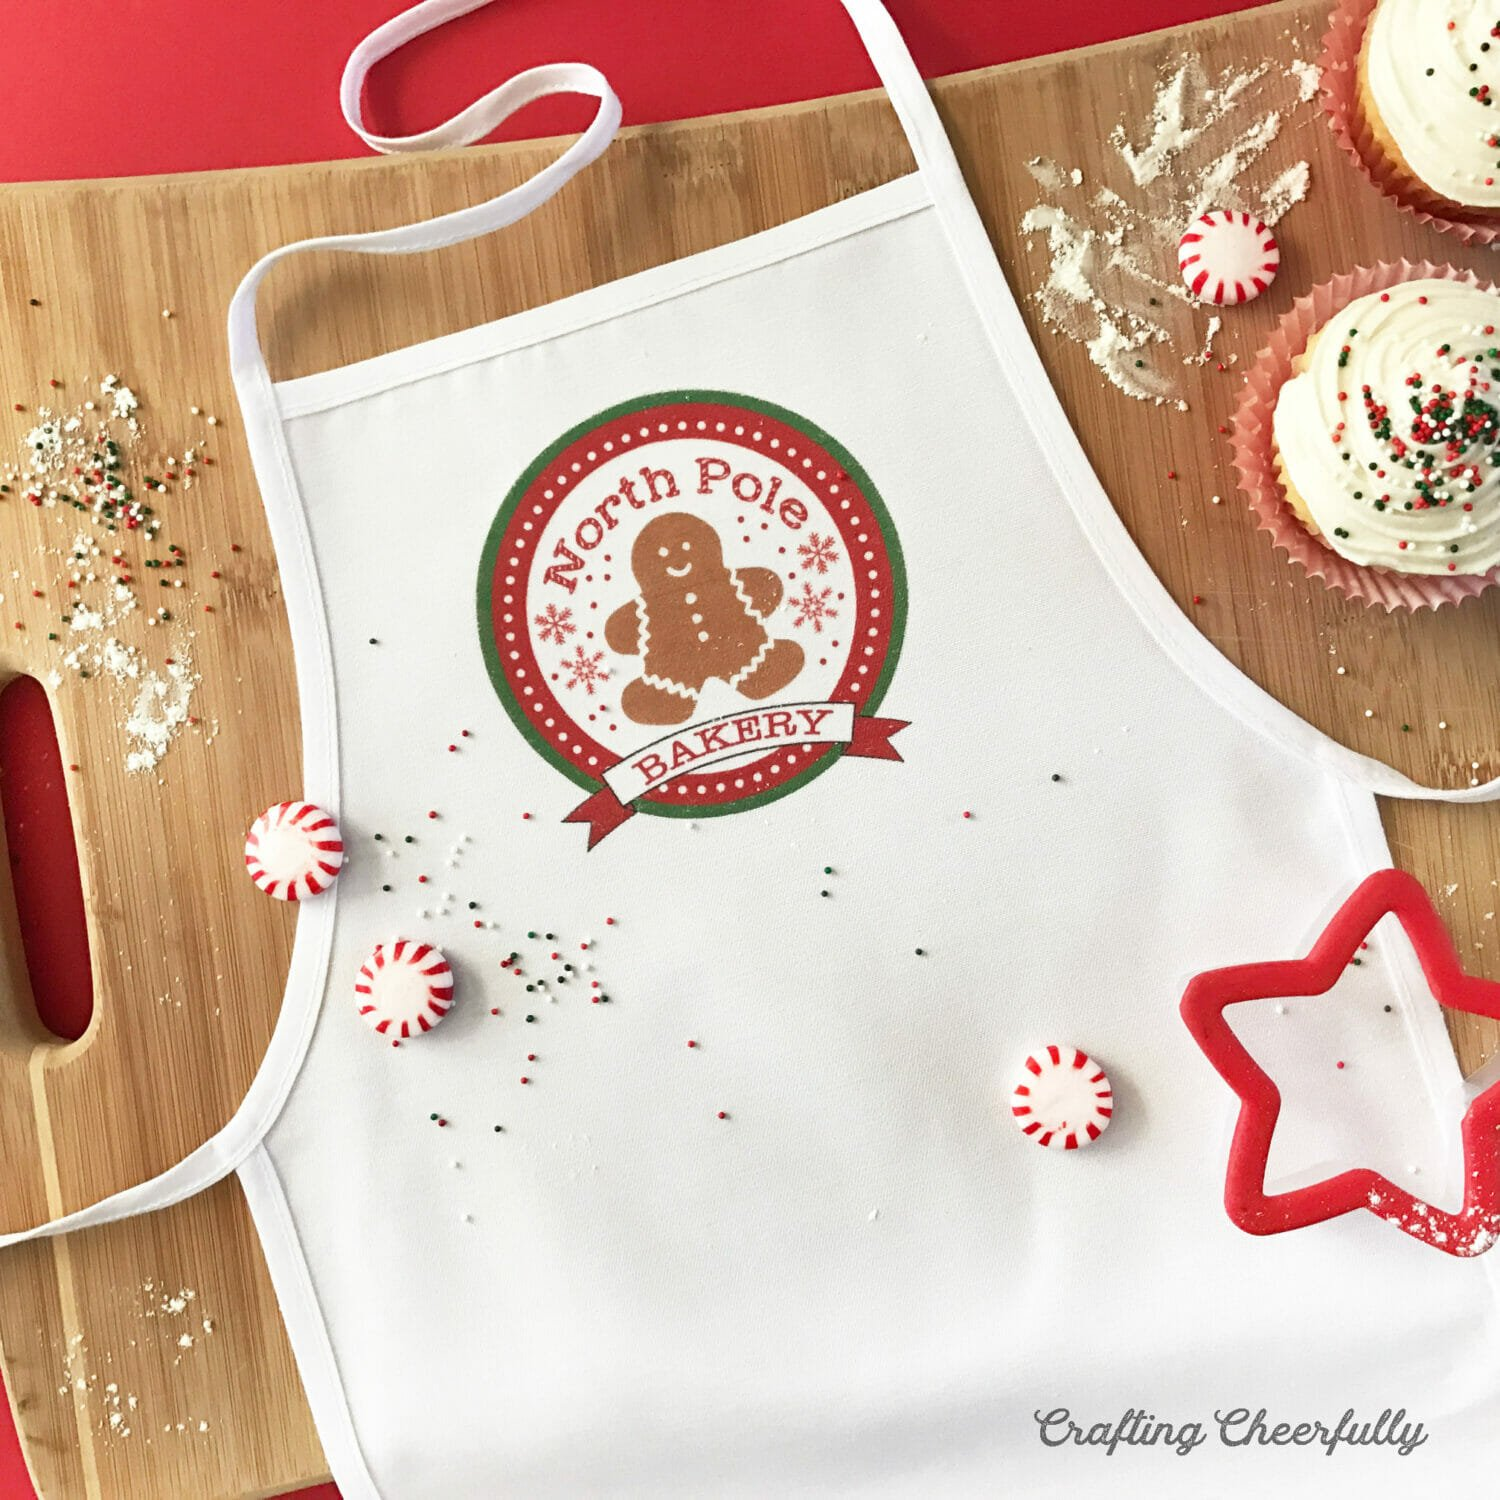 """White holiday apron with cute gingerbread image that says """"North Pole Bakery"""" lays on a cutting board with peppermints and cookie cutters."""